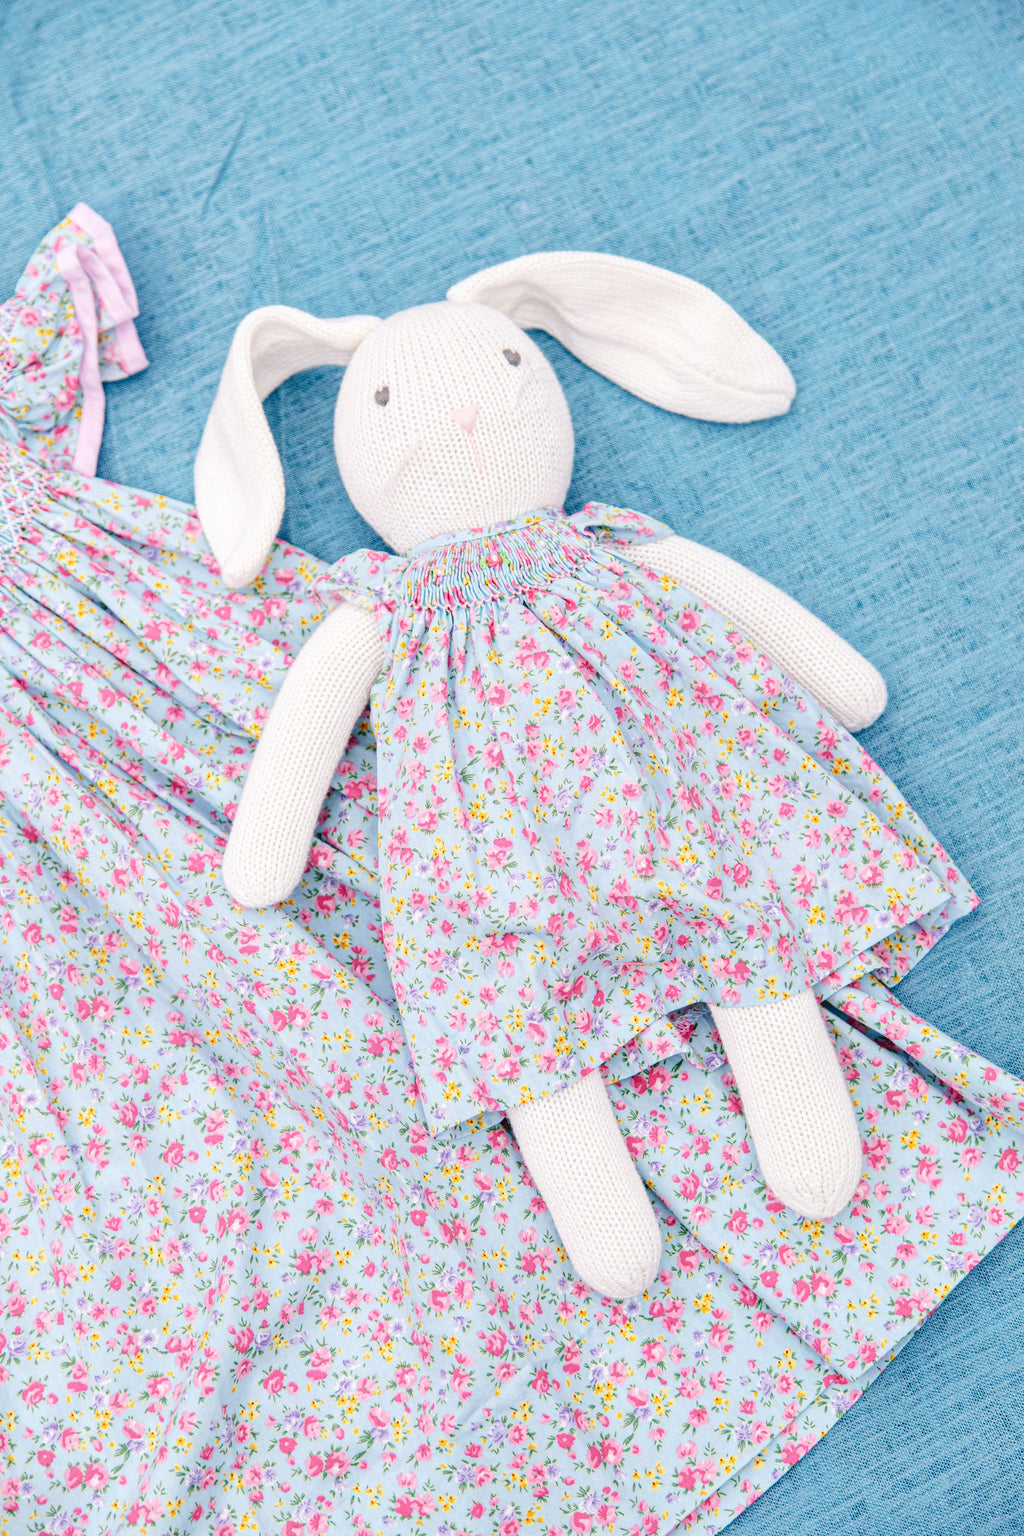 Easter Bunny in Dress D1254